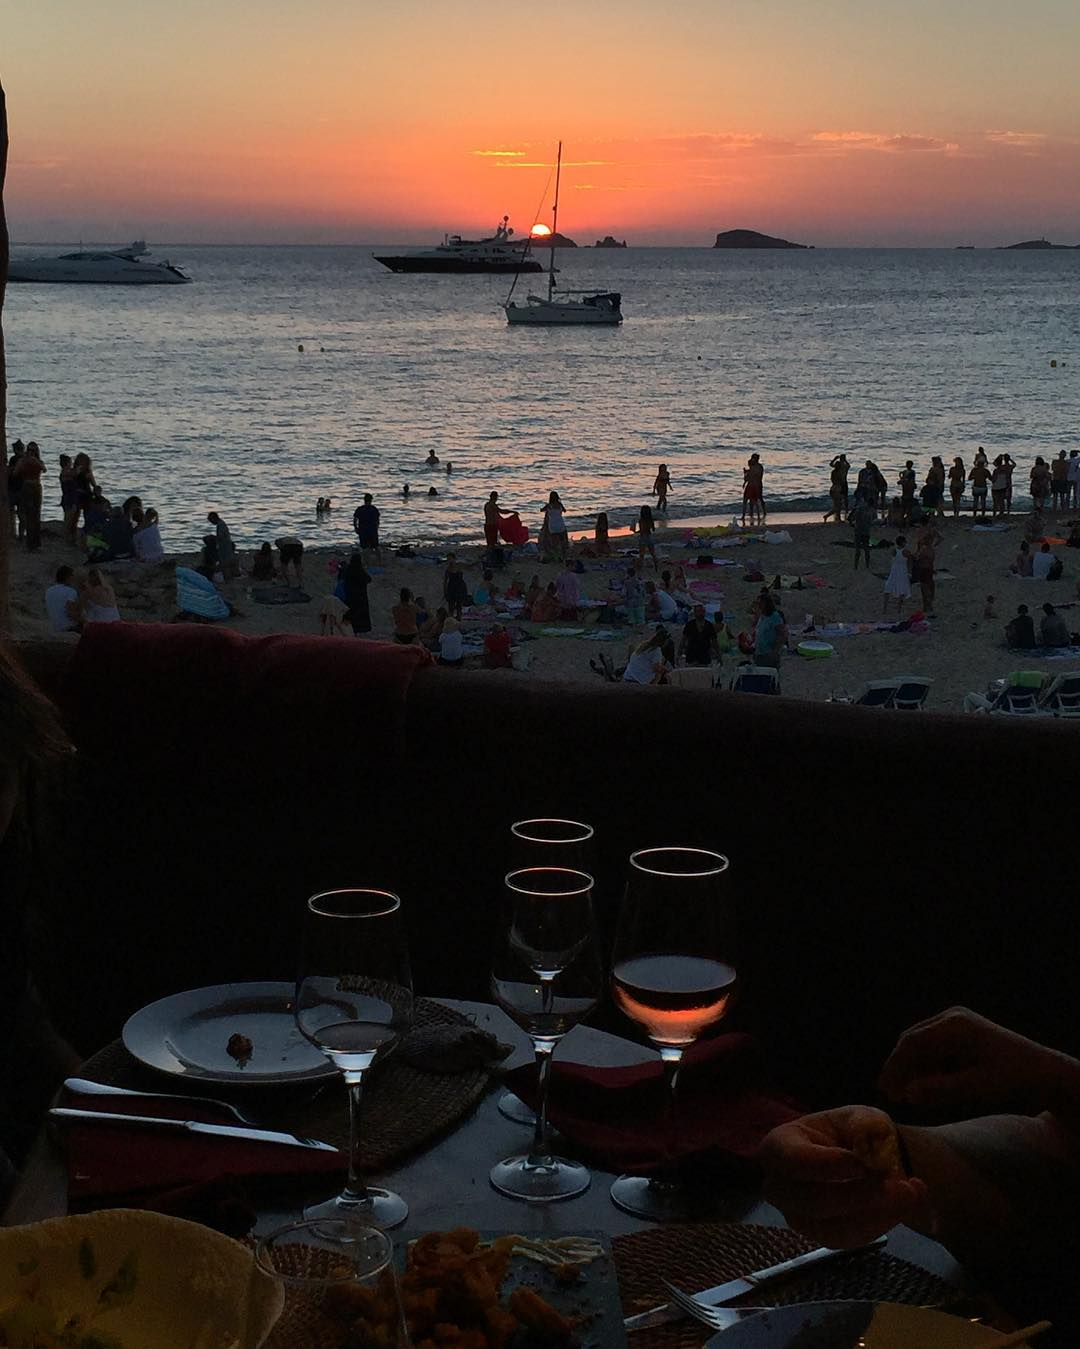 Last night's dinner view featured: this epic Ibiza sunset, topless beachgoers, and boats - of the large yacht variety. I'll be real with you, it's an amazing place to be. #sunsetporn #Ibiza #dinnerandashow